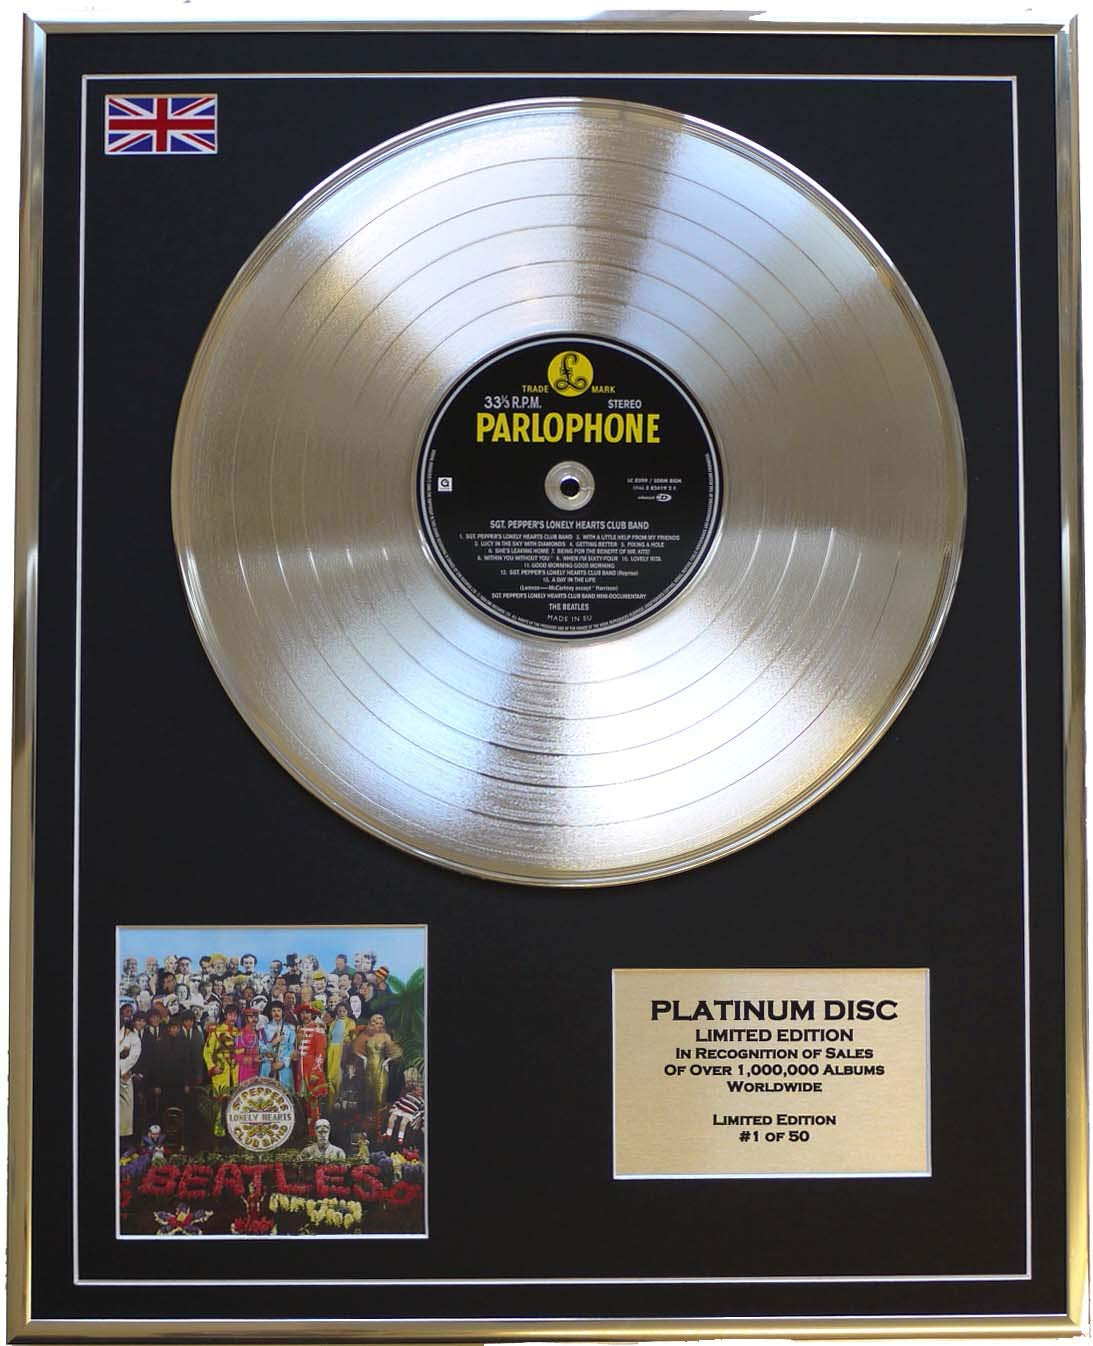 THE BEATLES//Limitierte Edition Platin Schallplatte/SGT. PEPPERS LONELY HEARTS CLUB BAND